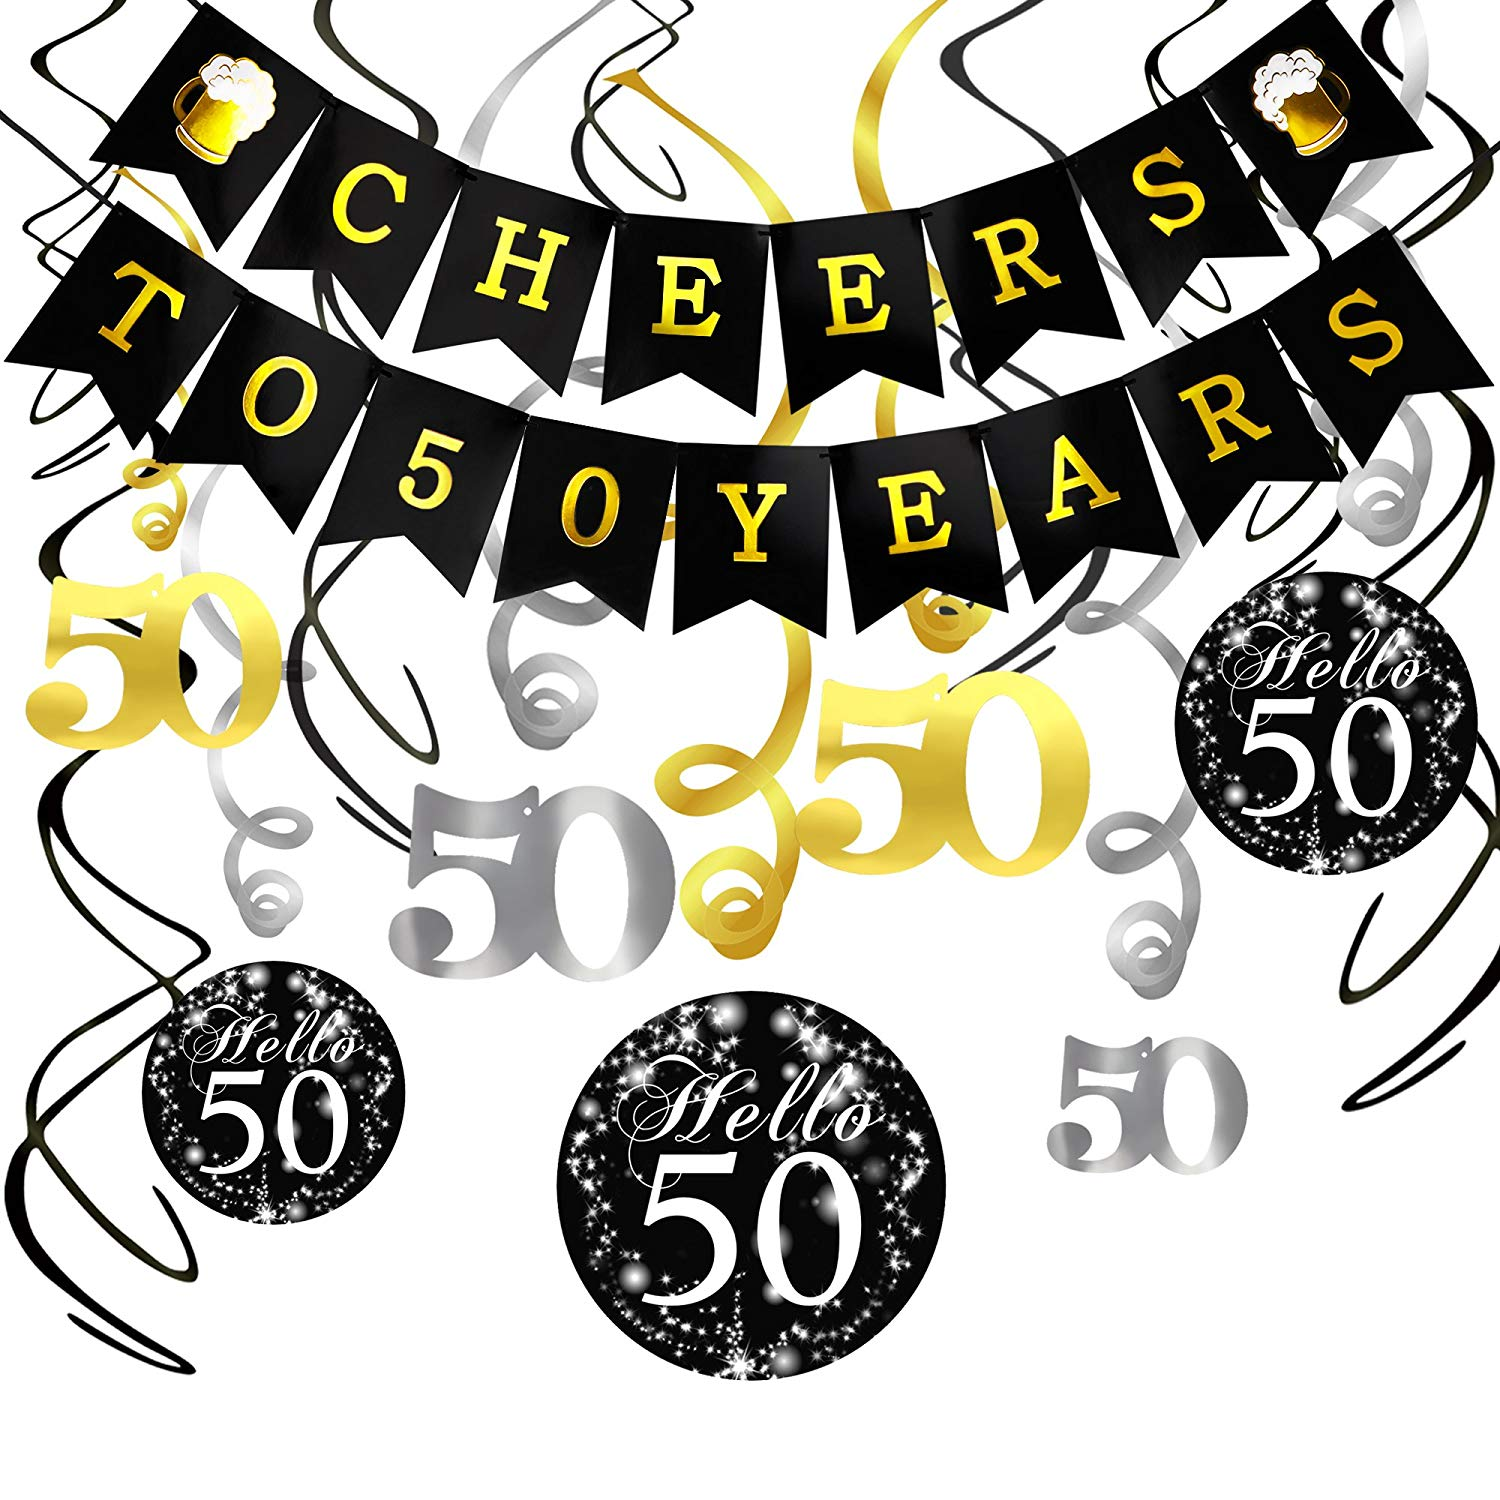 Get Quotations 50th Birthday Decorations Kit Konsait Cheers To 50 Years Banner Swallowtail Bunting Garland Sparkling Celebration